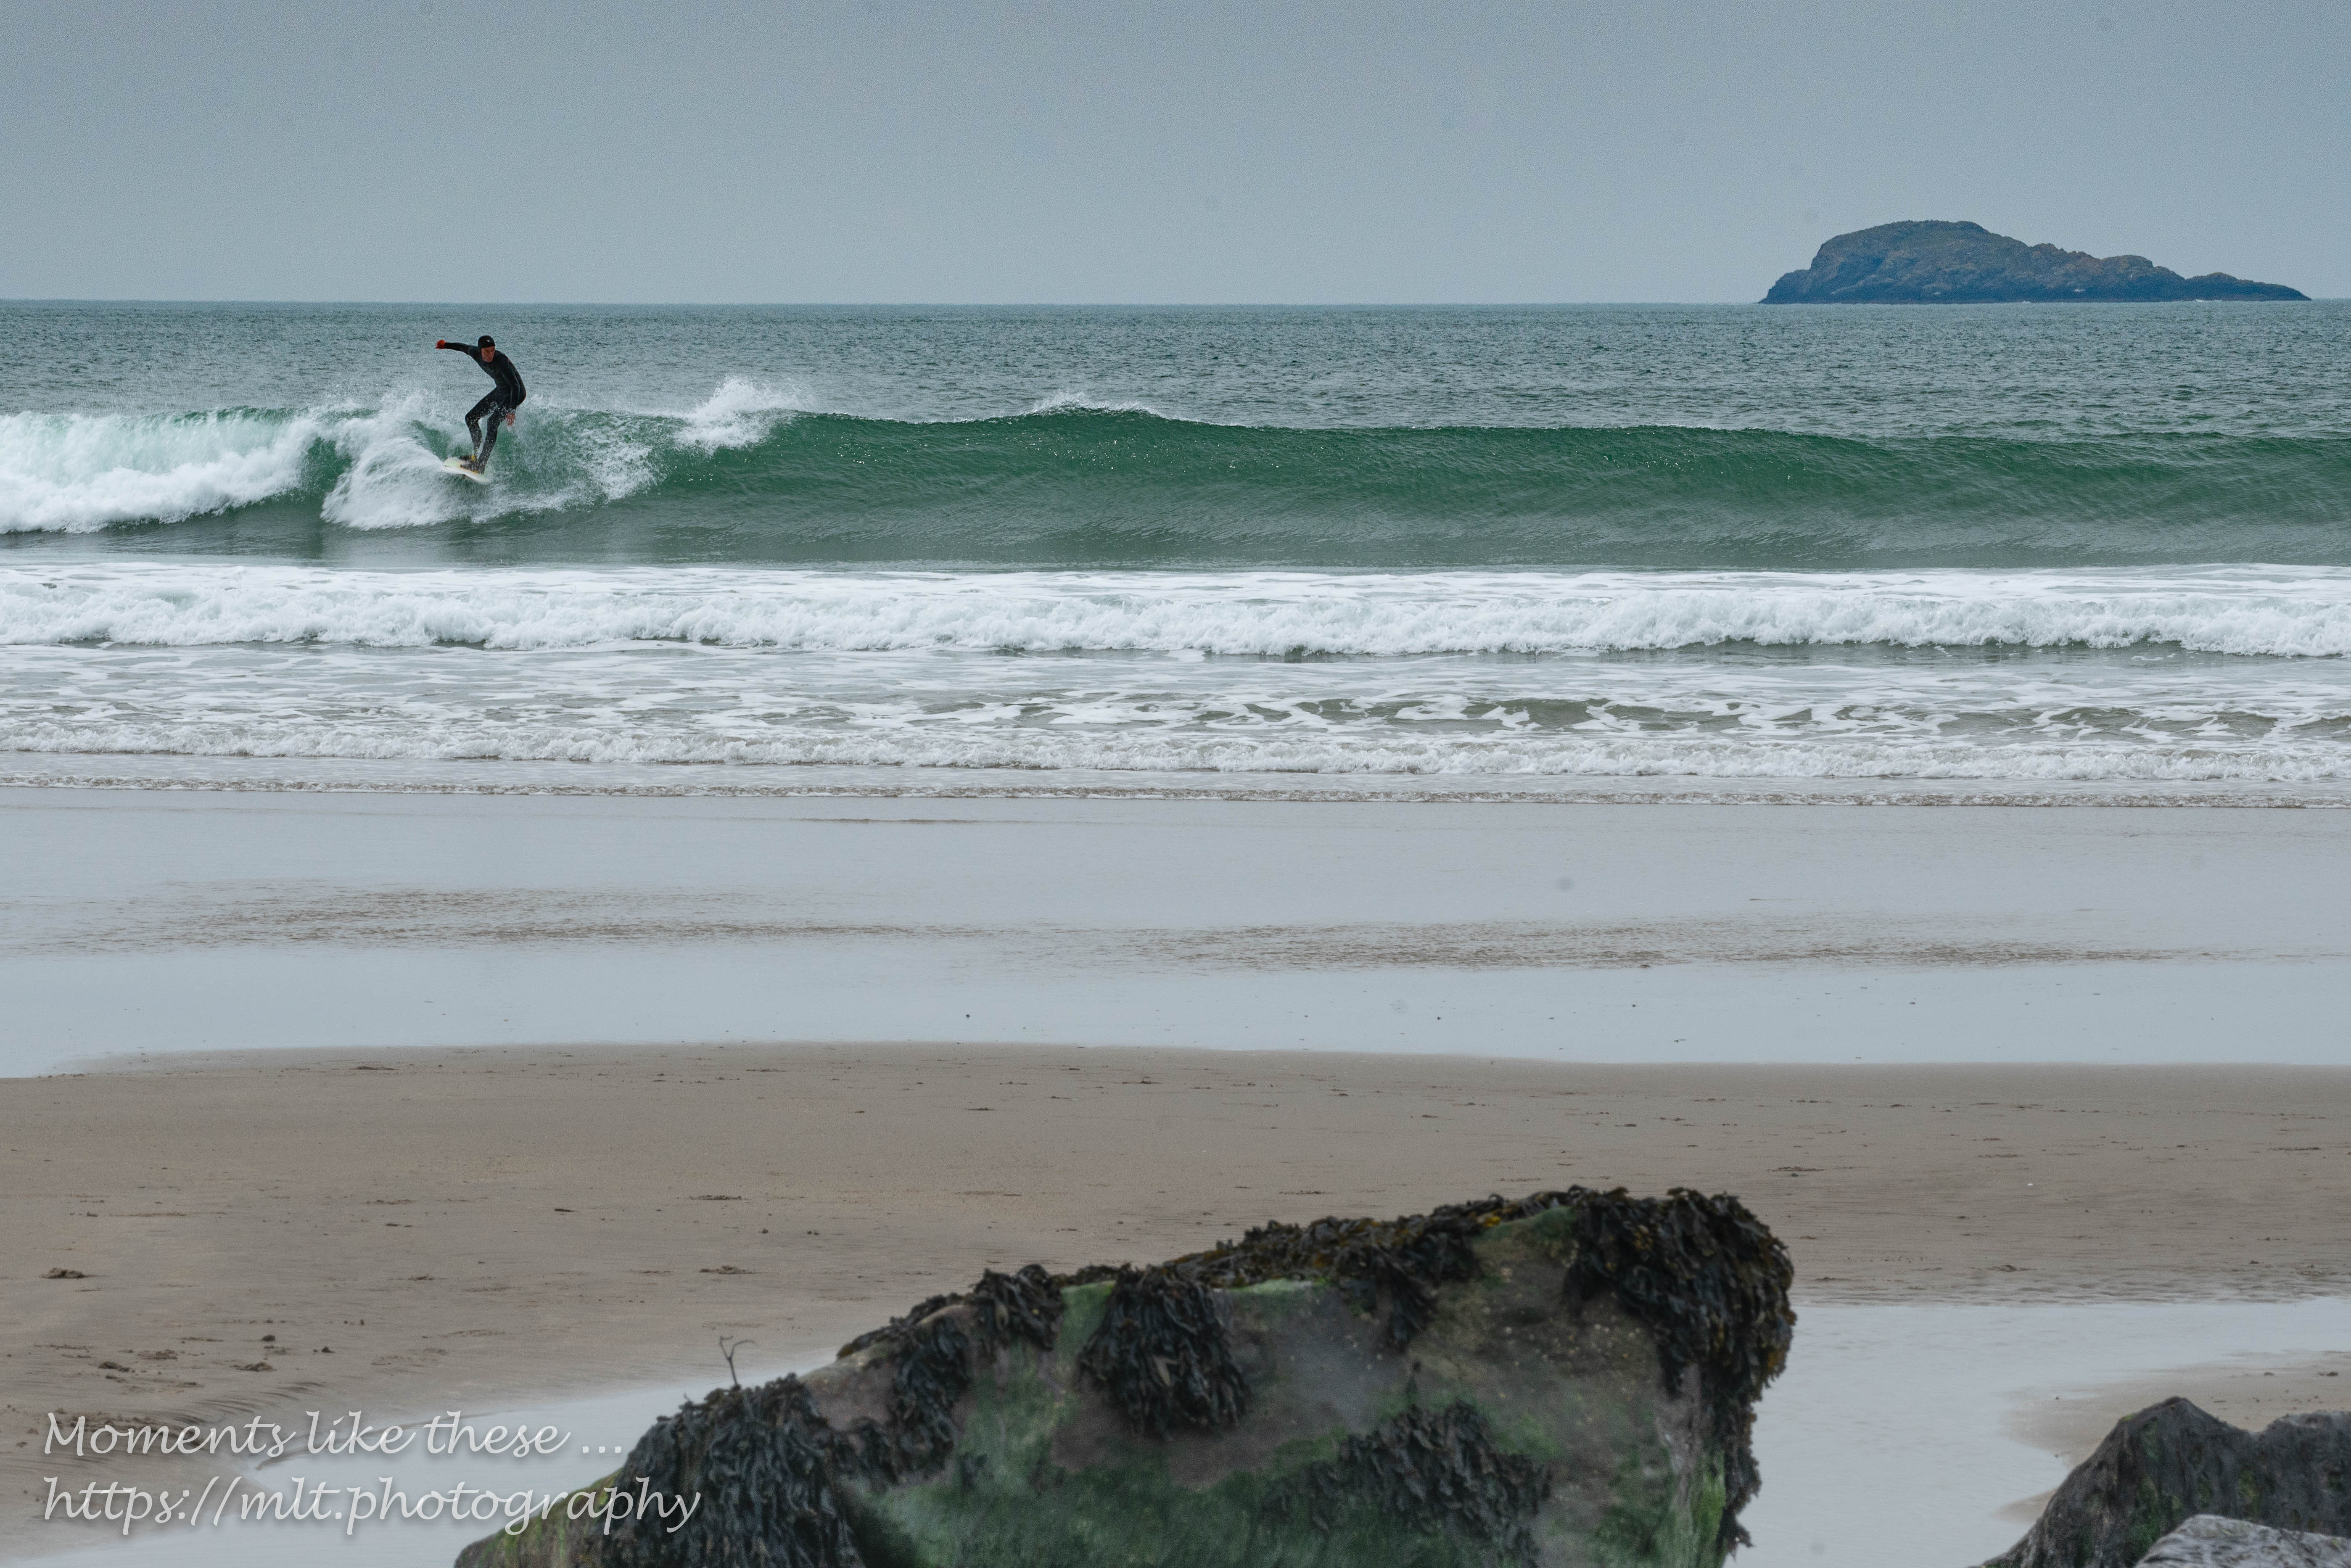 Surfing at Whitesands Bay